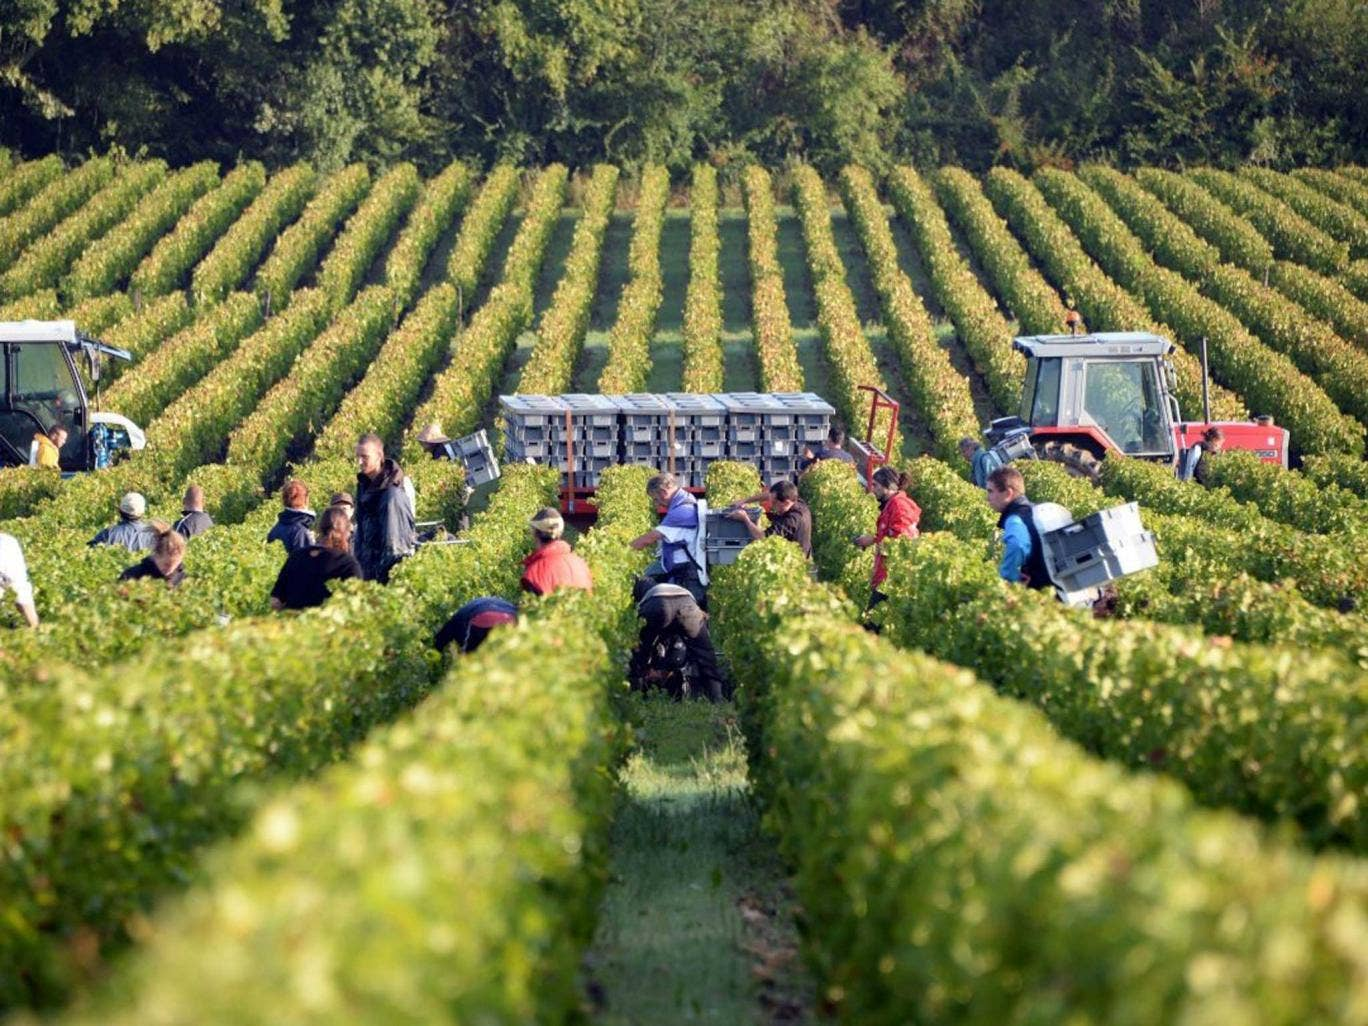 Sorrows to drown: This year's vintage is likely to be one of the most disappointing ever